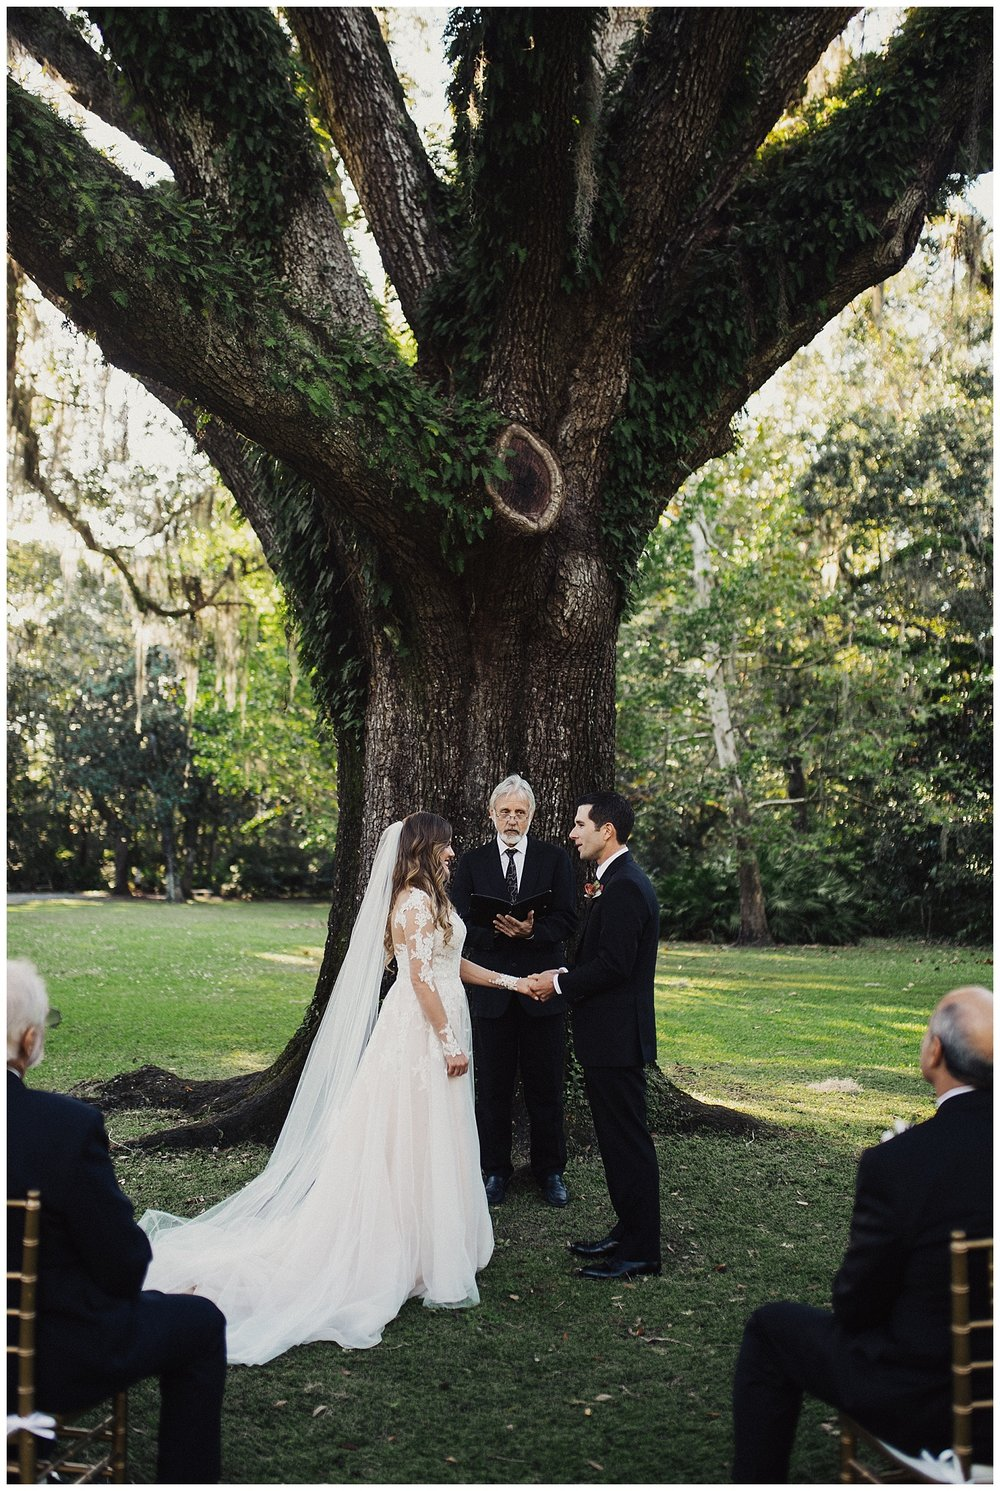 Wedding under the Wedding Tree